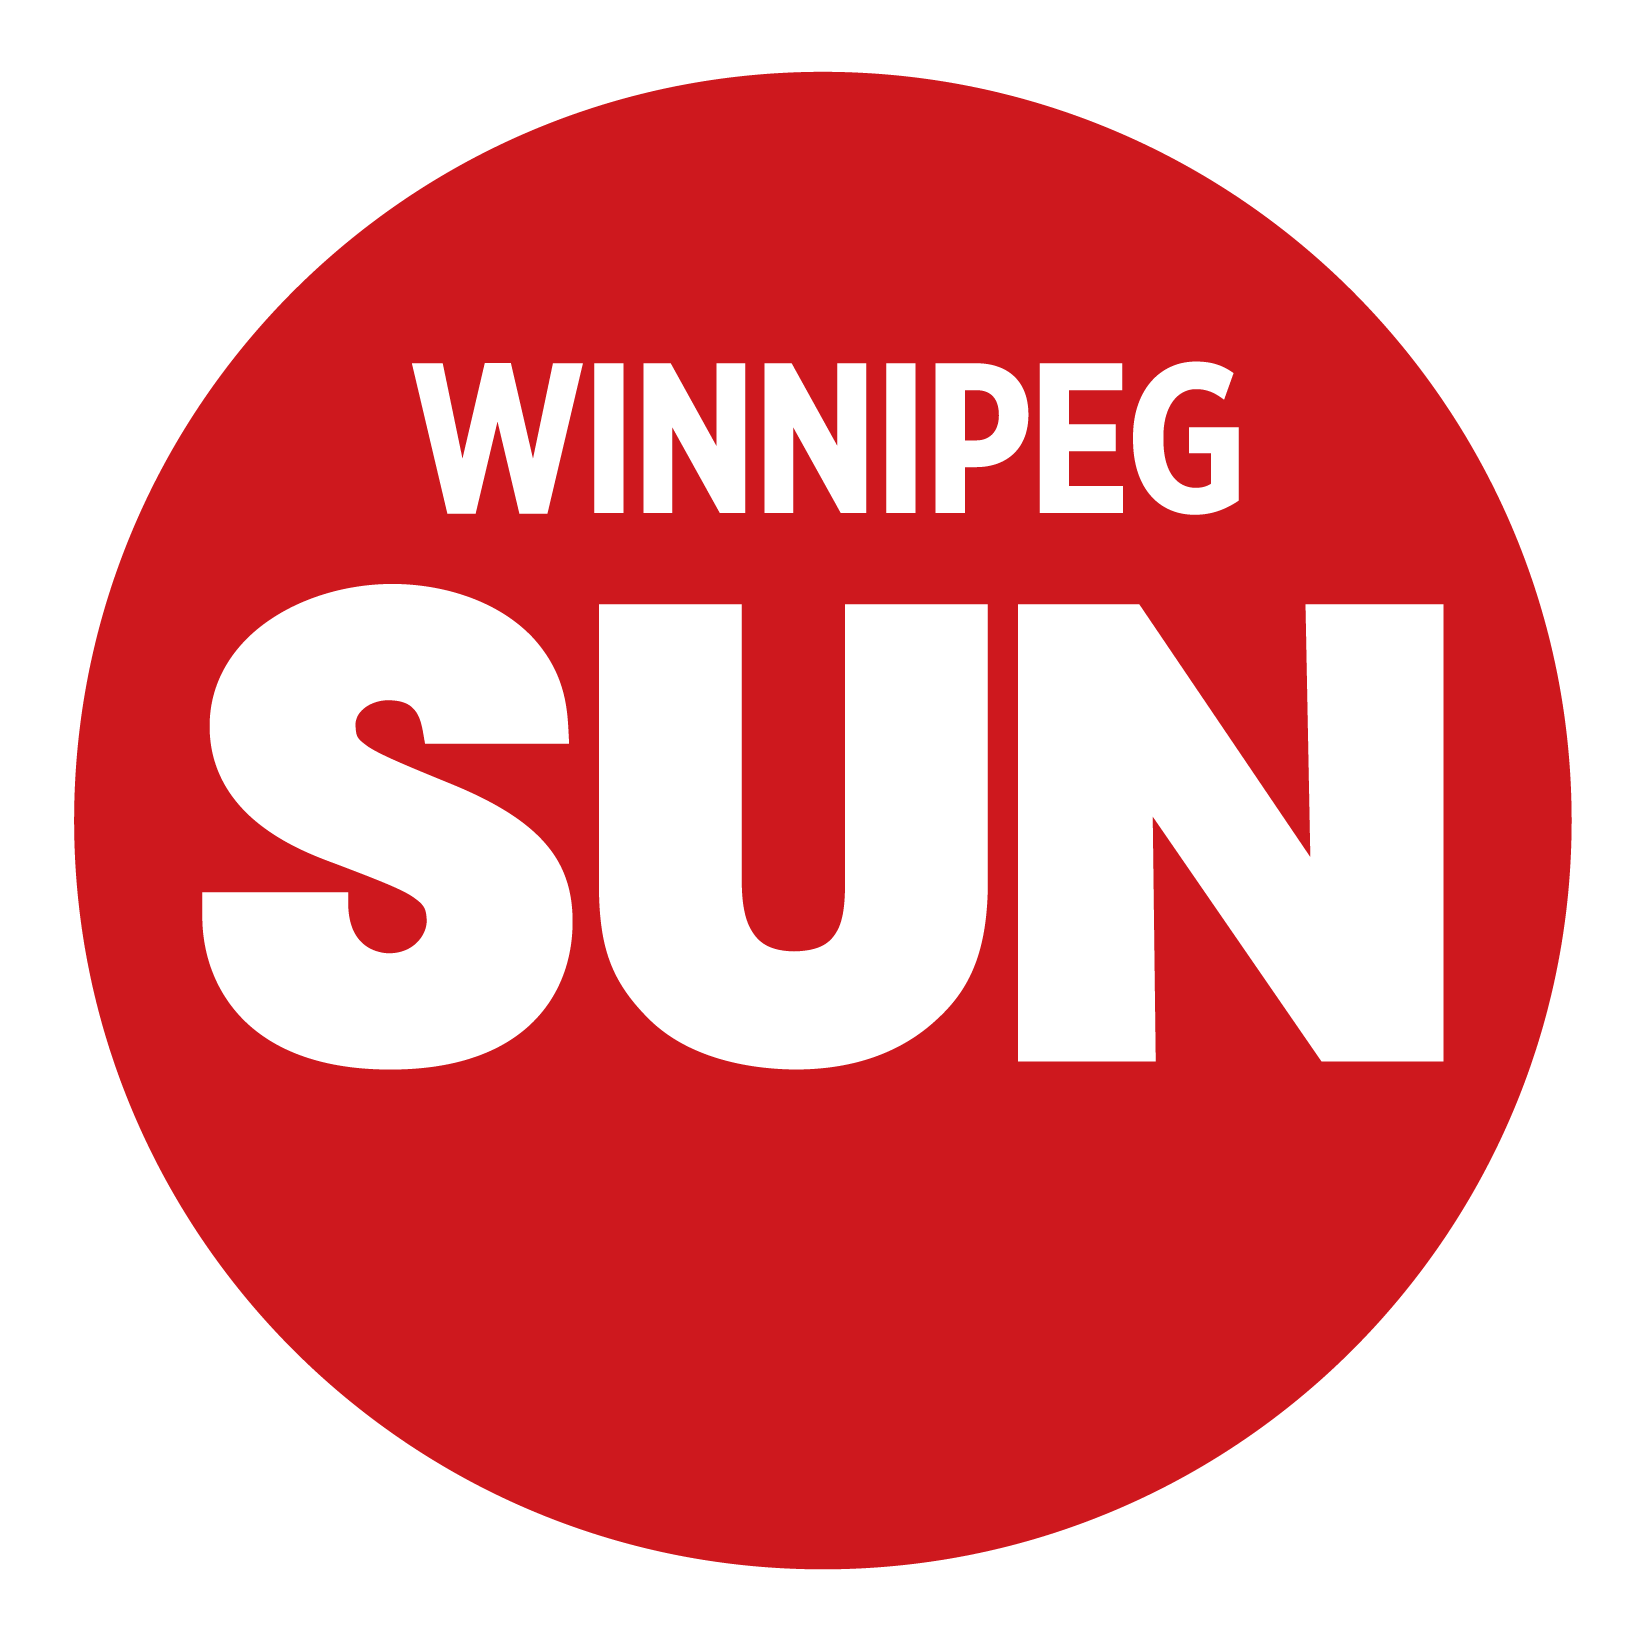 The Winnipeg Sun